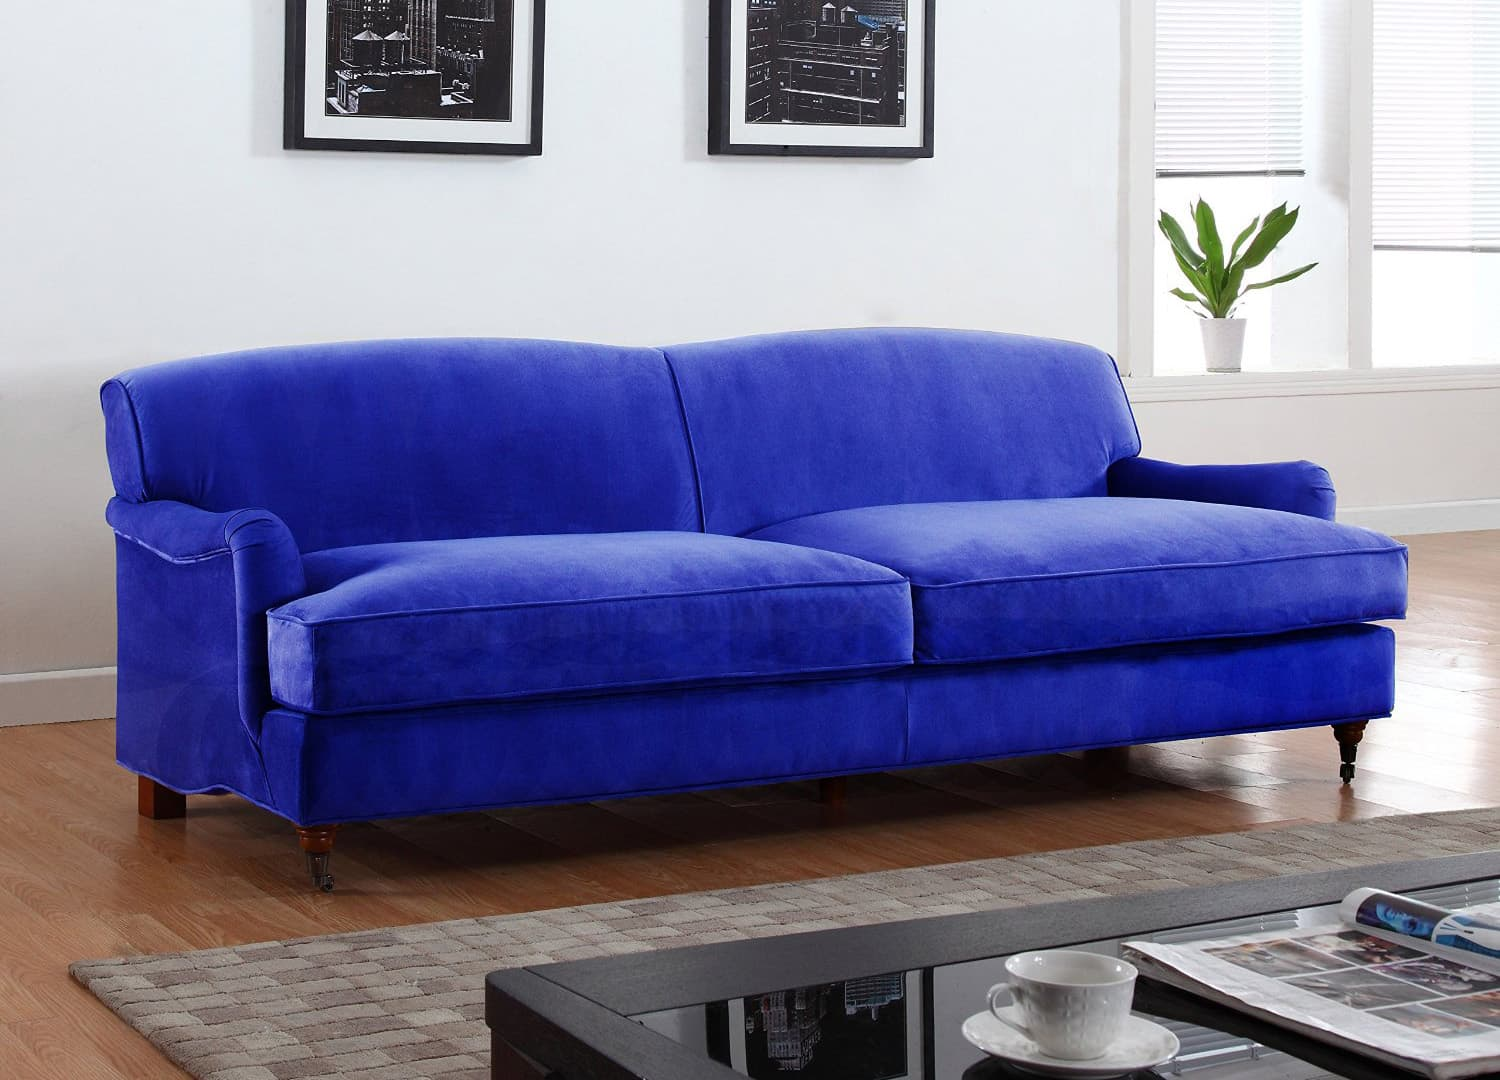 Best sofas under 800 apartment therapy - Best sectionals for apartments ...